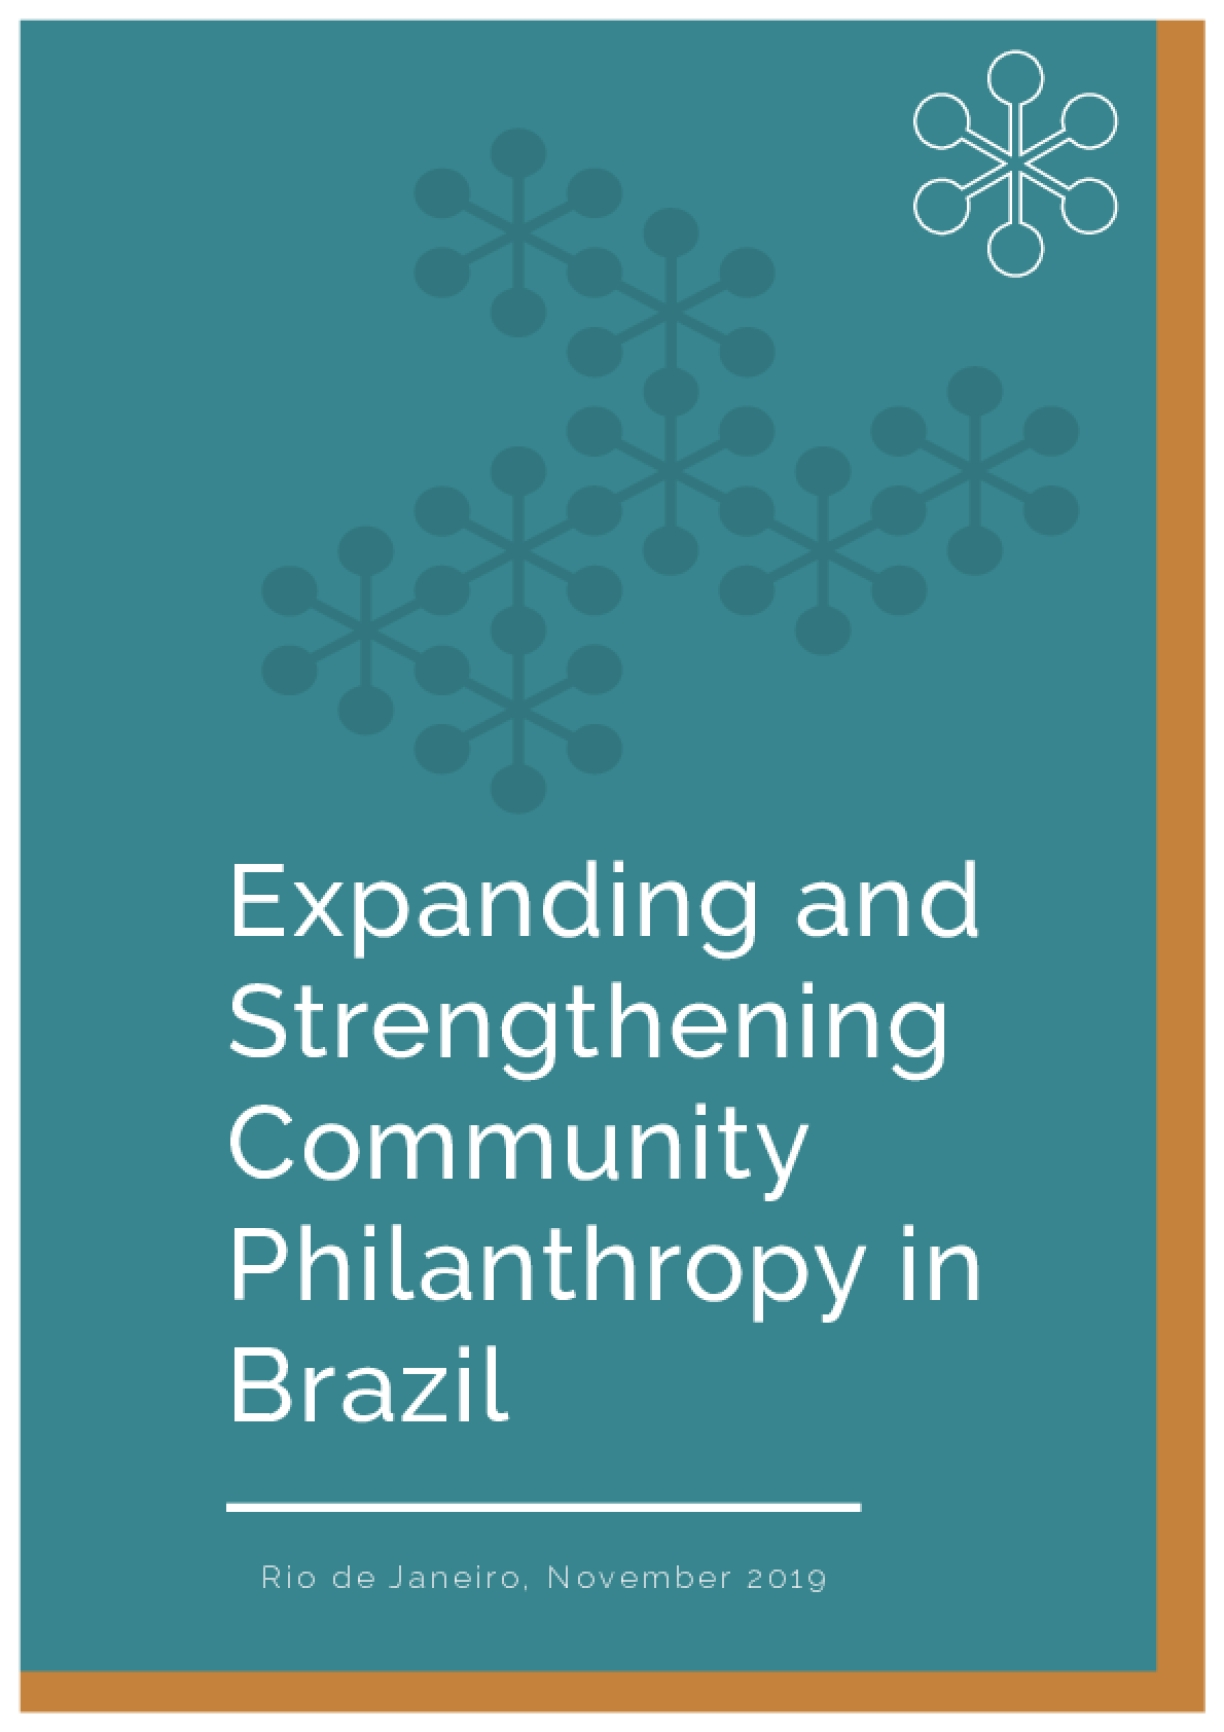 Expanding and Strengthening Community Philanthropy in Brazil